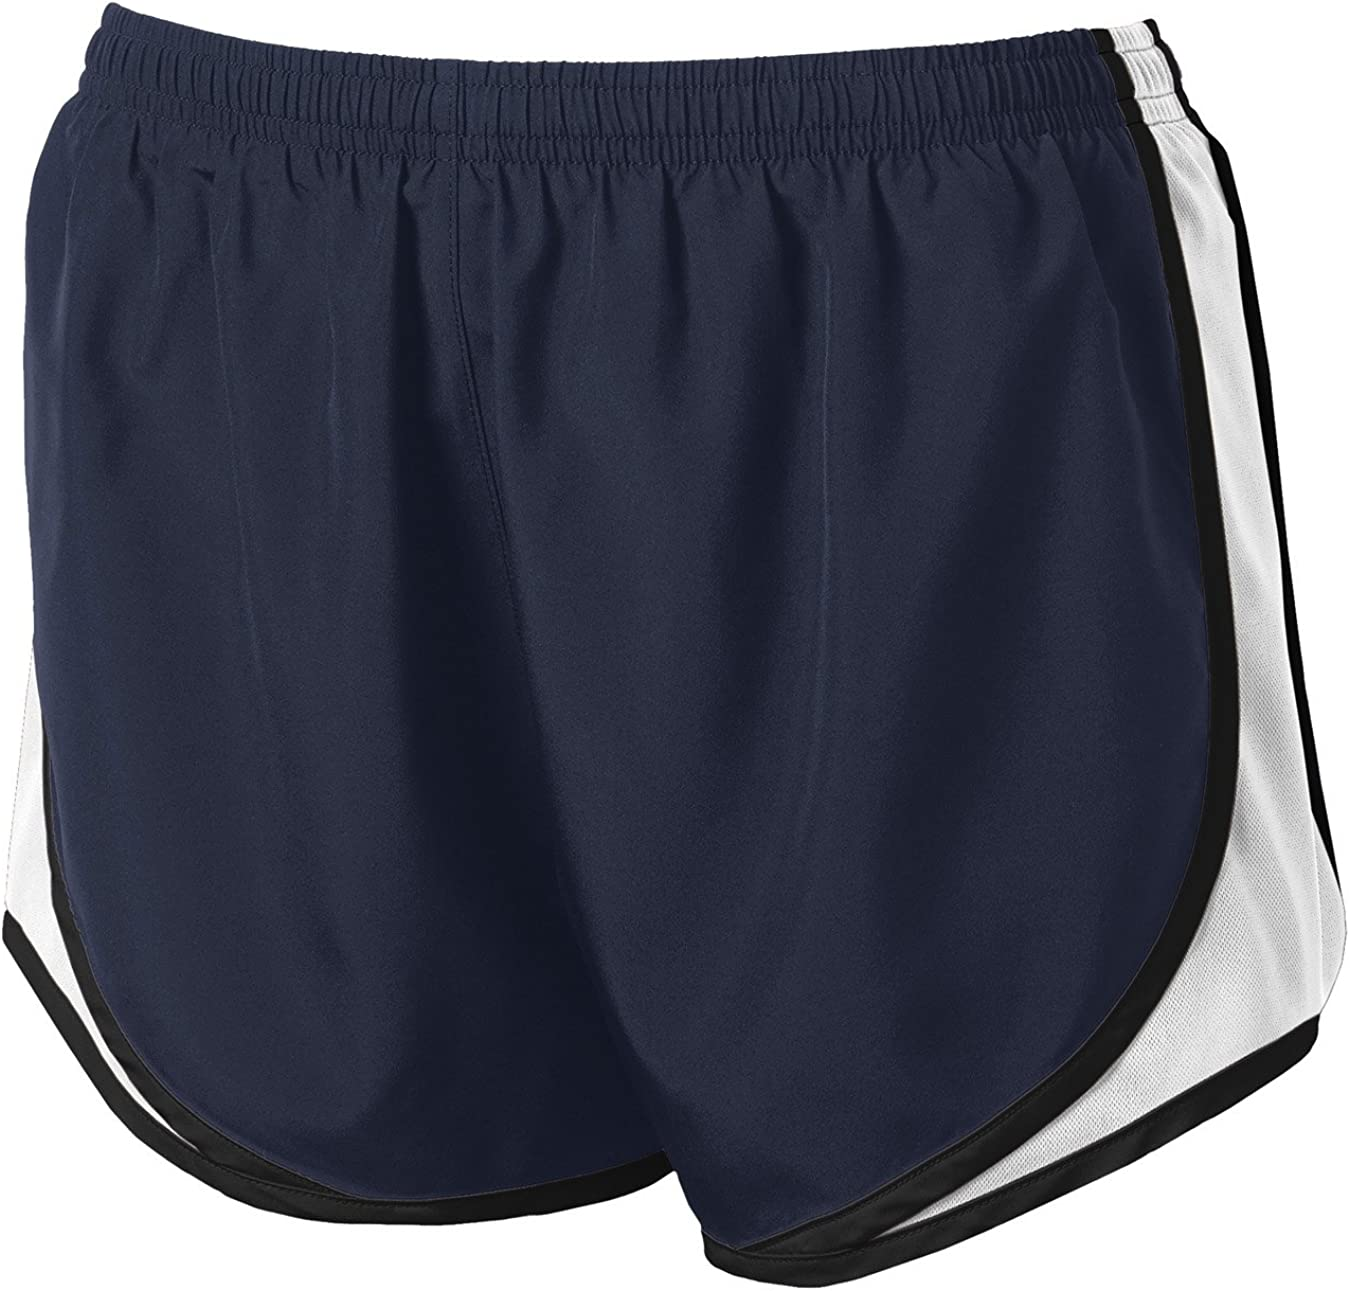 Joe's USA Ladies Moisture-Wicking Track & Field Running Shorts. True Navy/White/Black-4XL